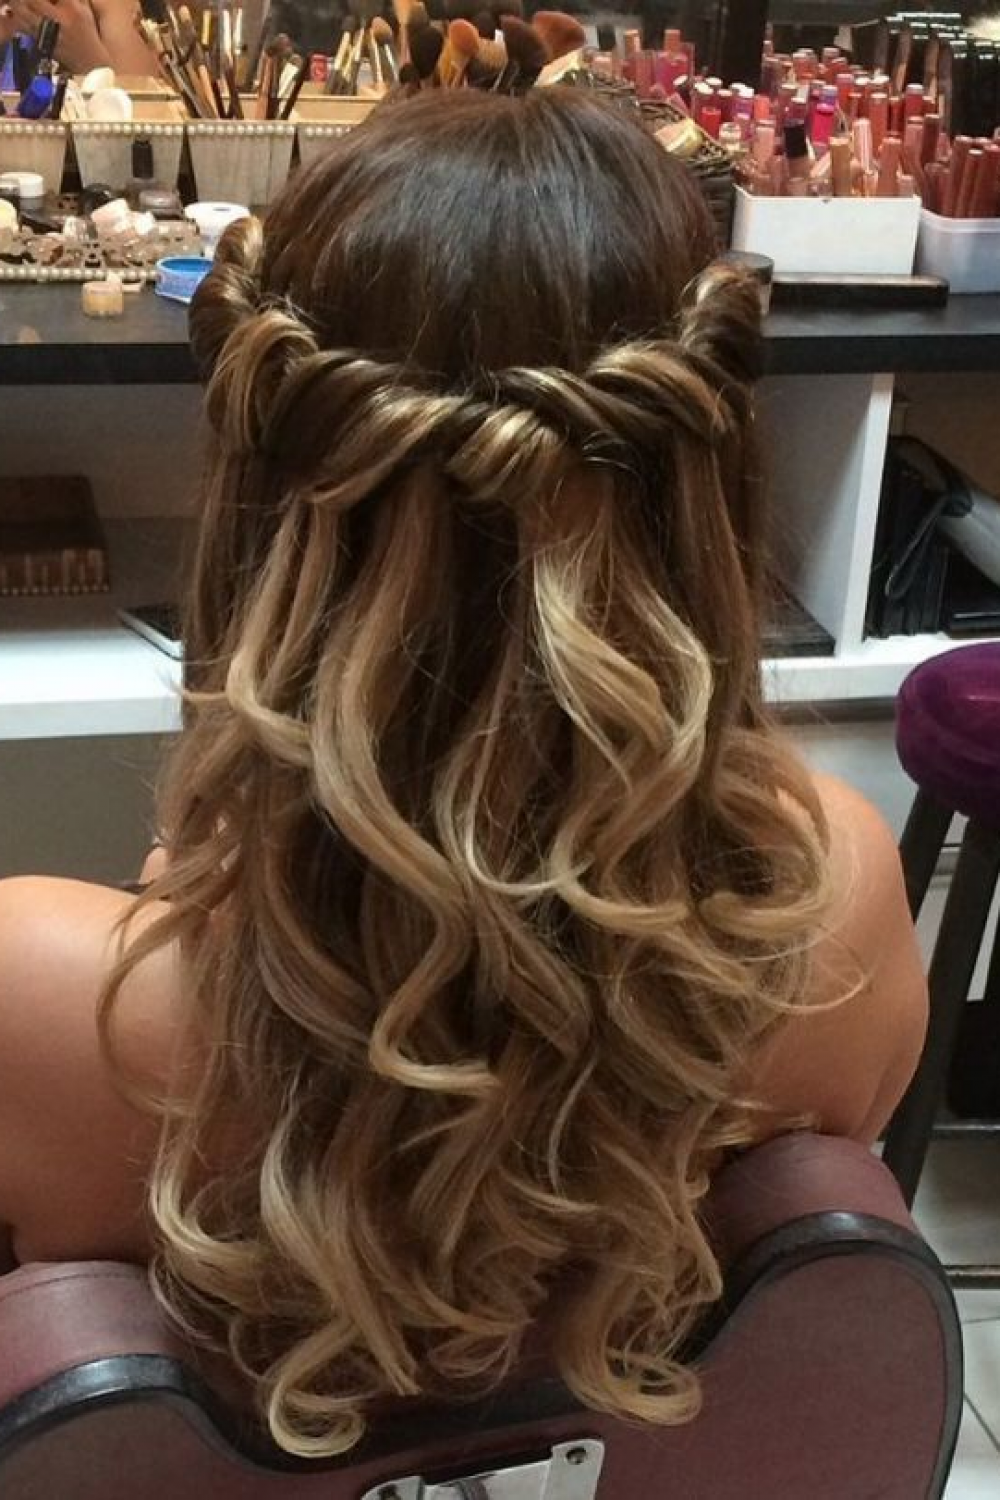 11 Cute Prom Hair Ideas You Will Fall In Love Long Hair Styles Hair Styles Down Hairstyles